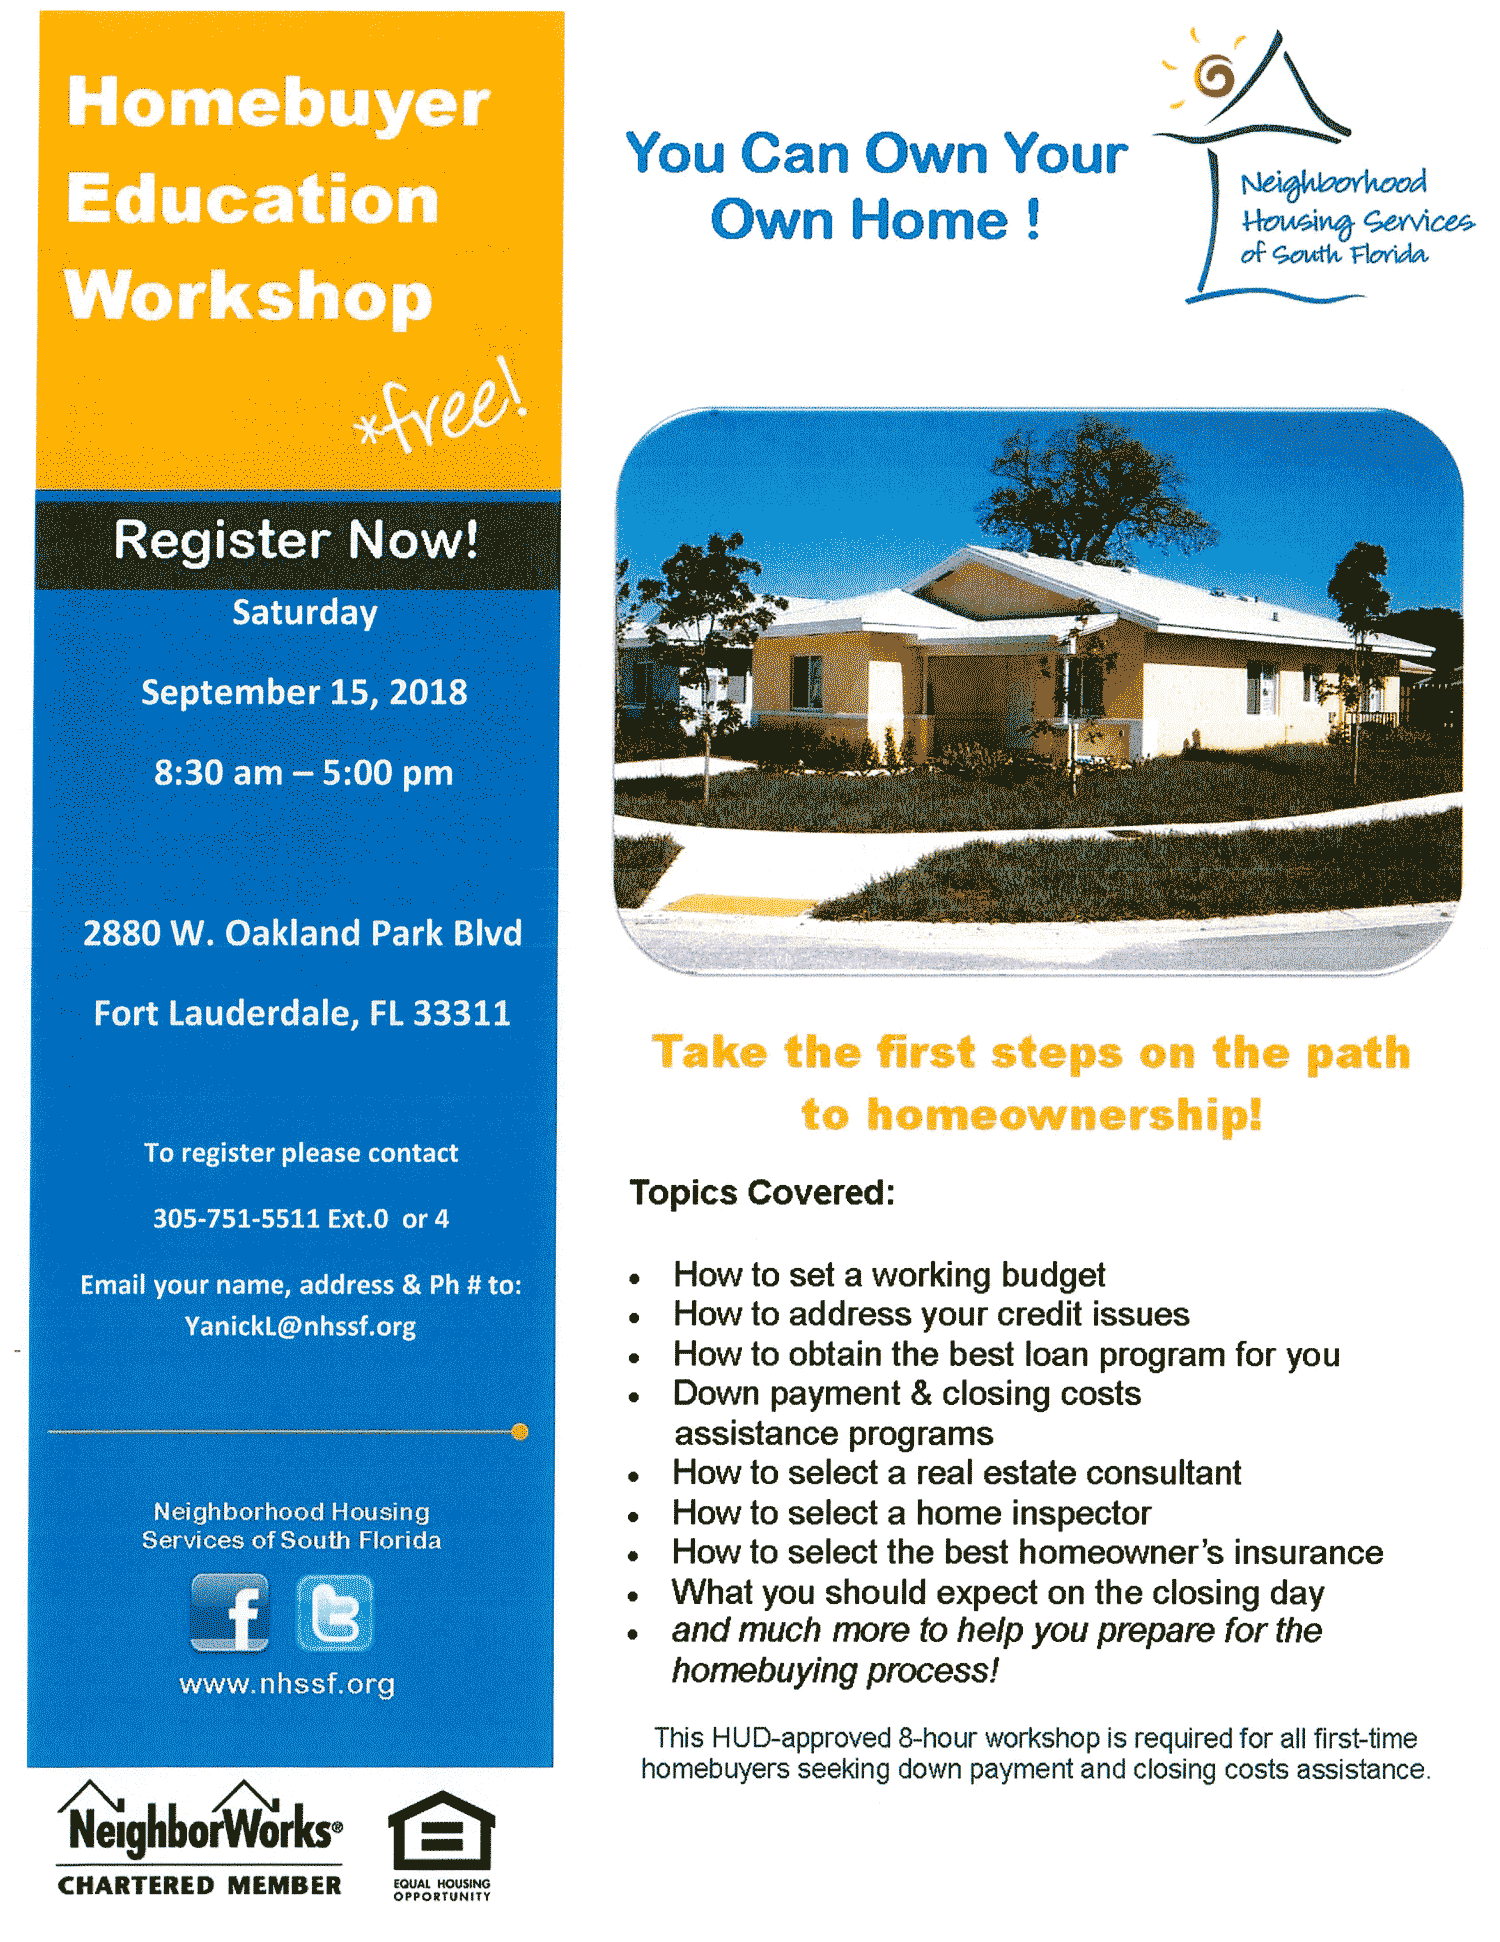 flyer for Homebuyer Education Workshop in Broward 9-15-18